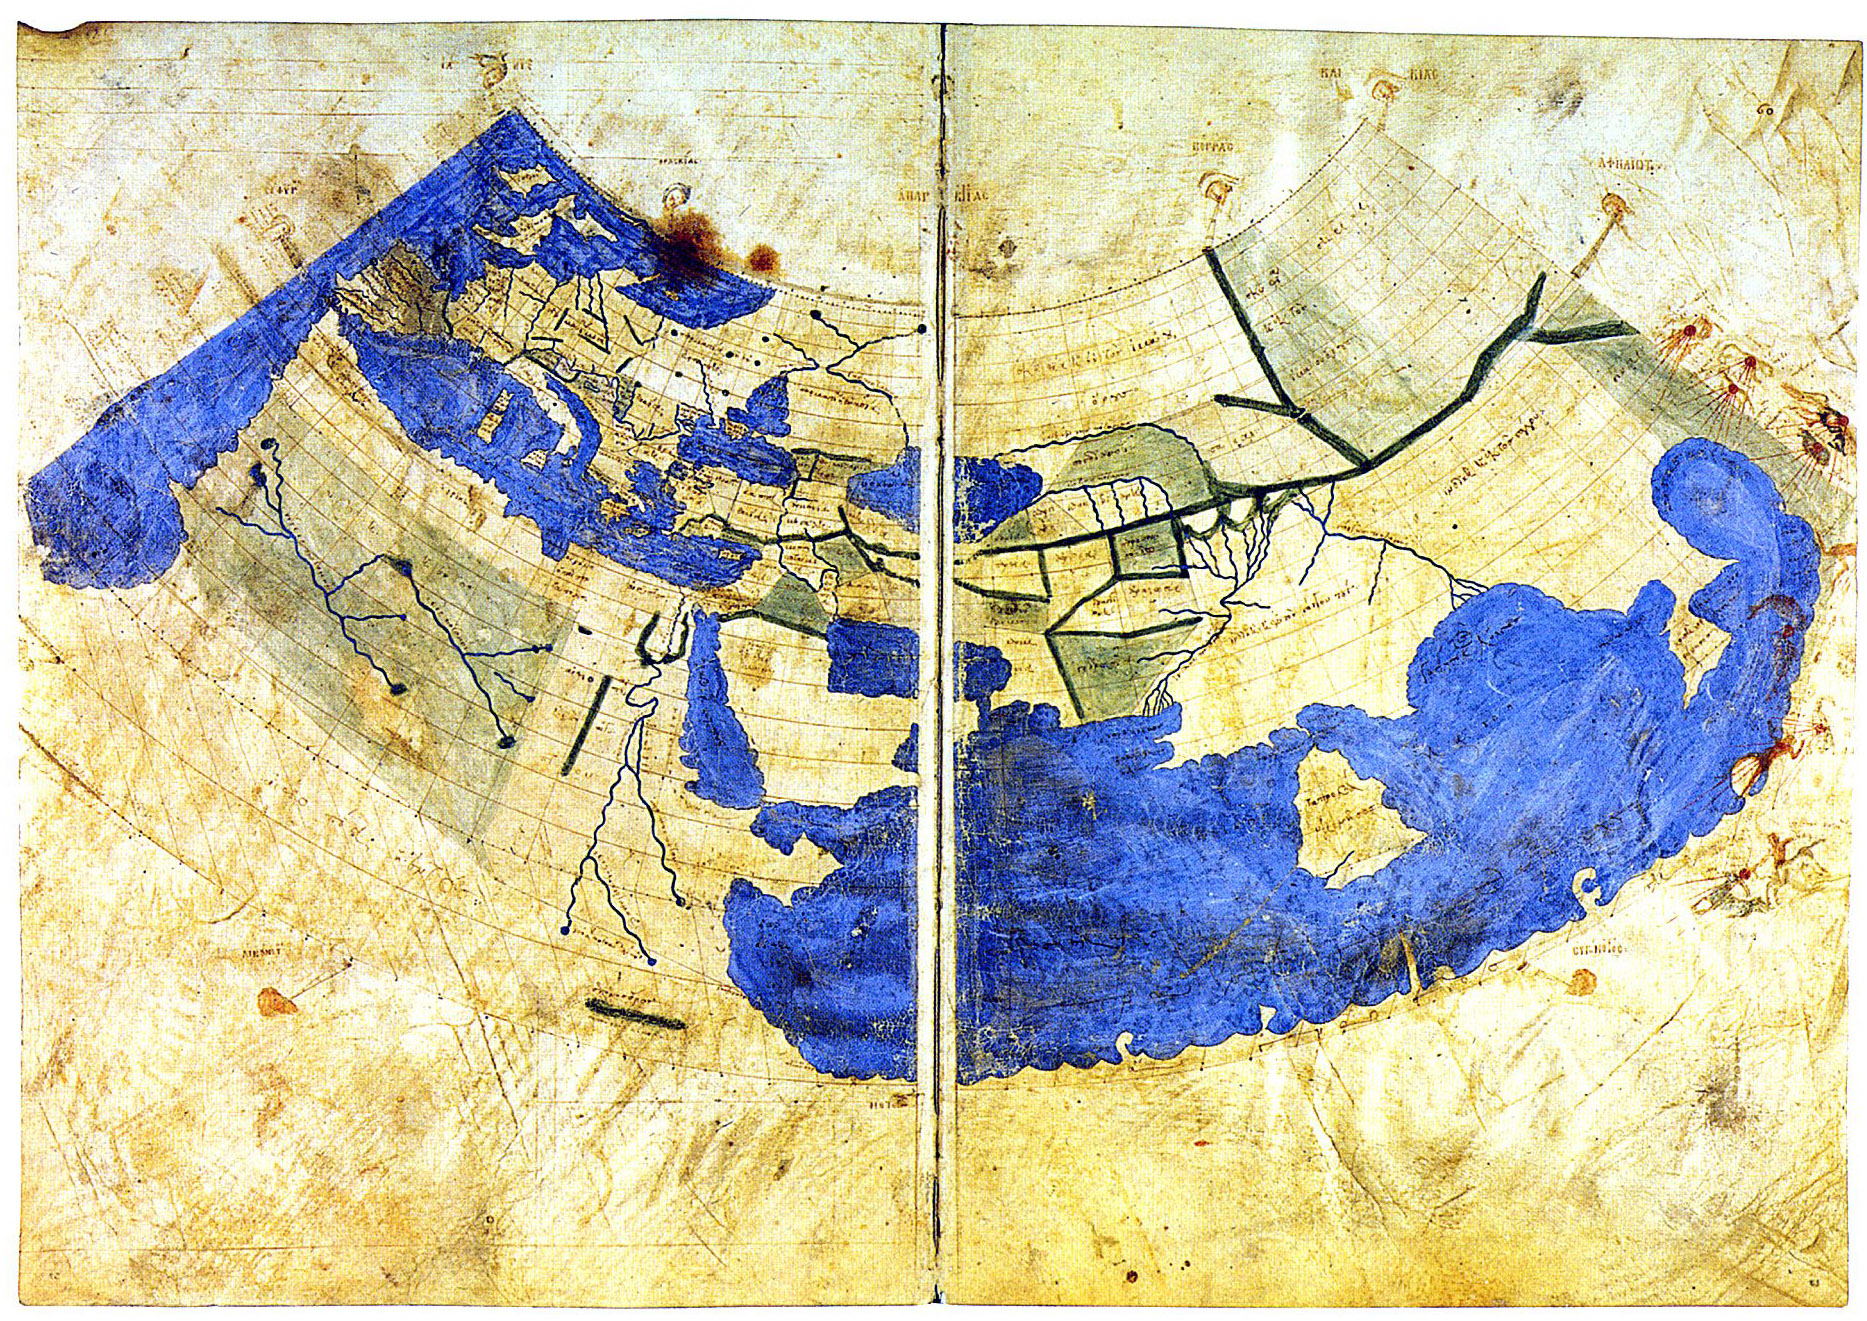 Ancient maps that changed the world see world maps from ancient ancient maps that changed the world see world maps from ancient greece babylon rome and the islamic world open culture gumiabroncs Images